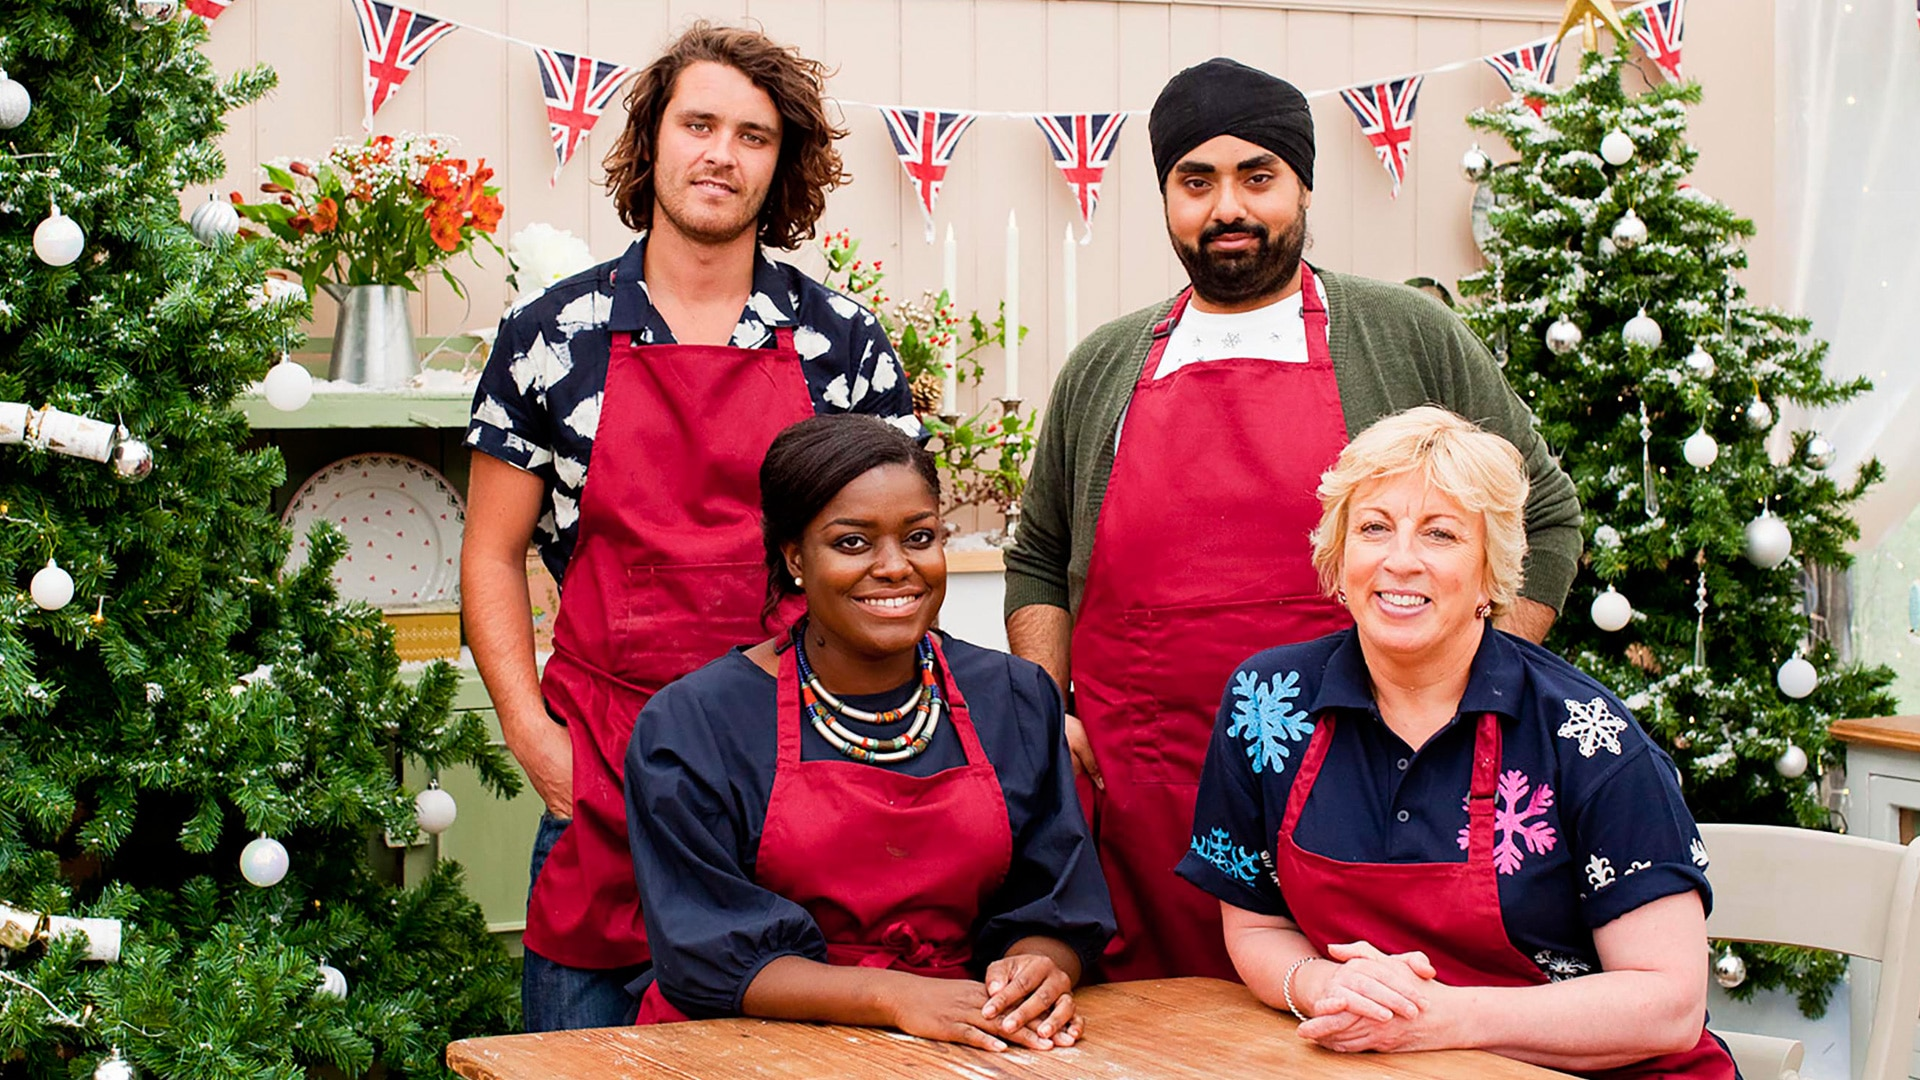 The Great Christmas Bake Off 2020 The Great British Bake Off: Festive Specials   All 4